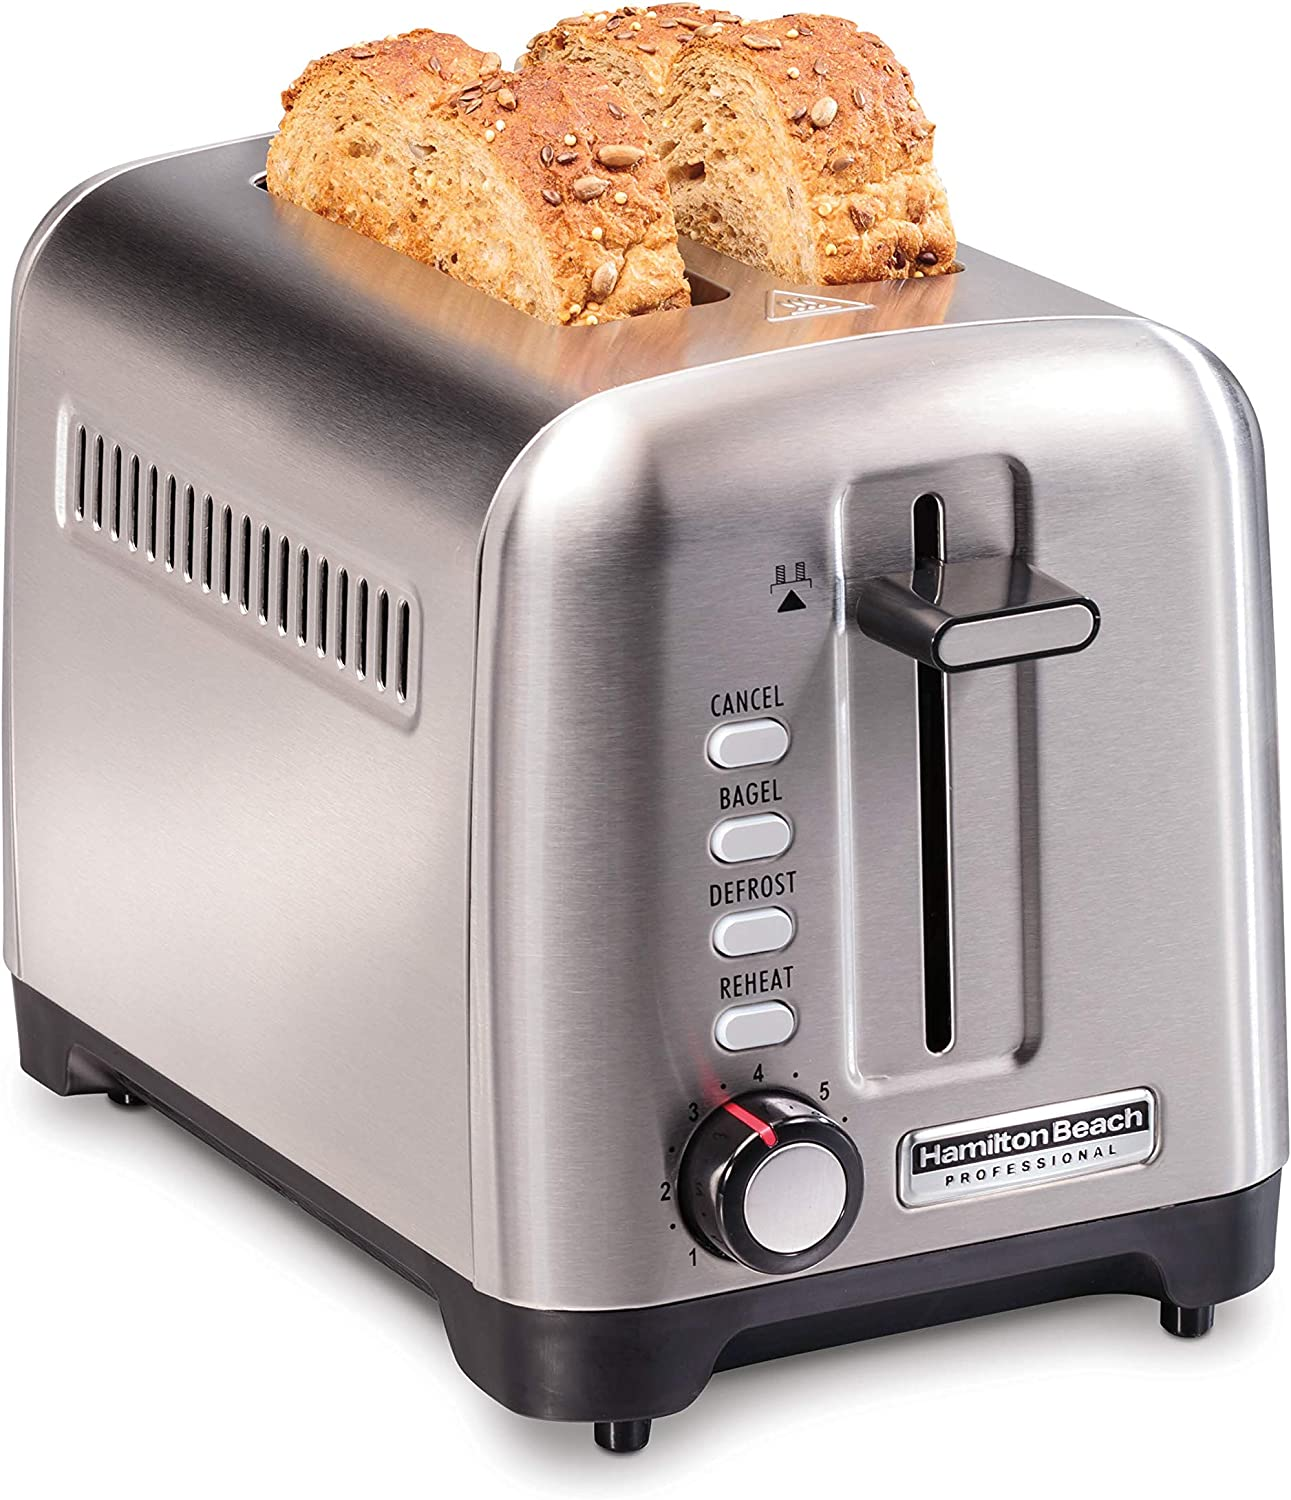 Hamilton Beach Professional 2 Slice Toaster, with Bagel, Defrost & Reheat Settings, Stainless Steel (22990)